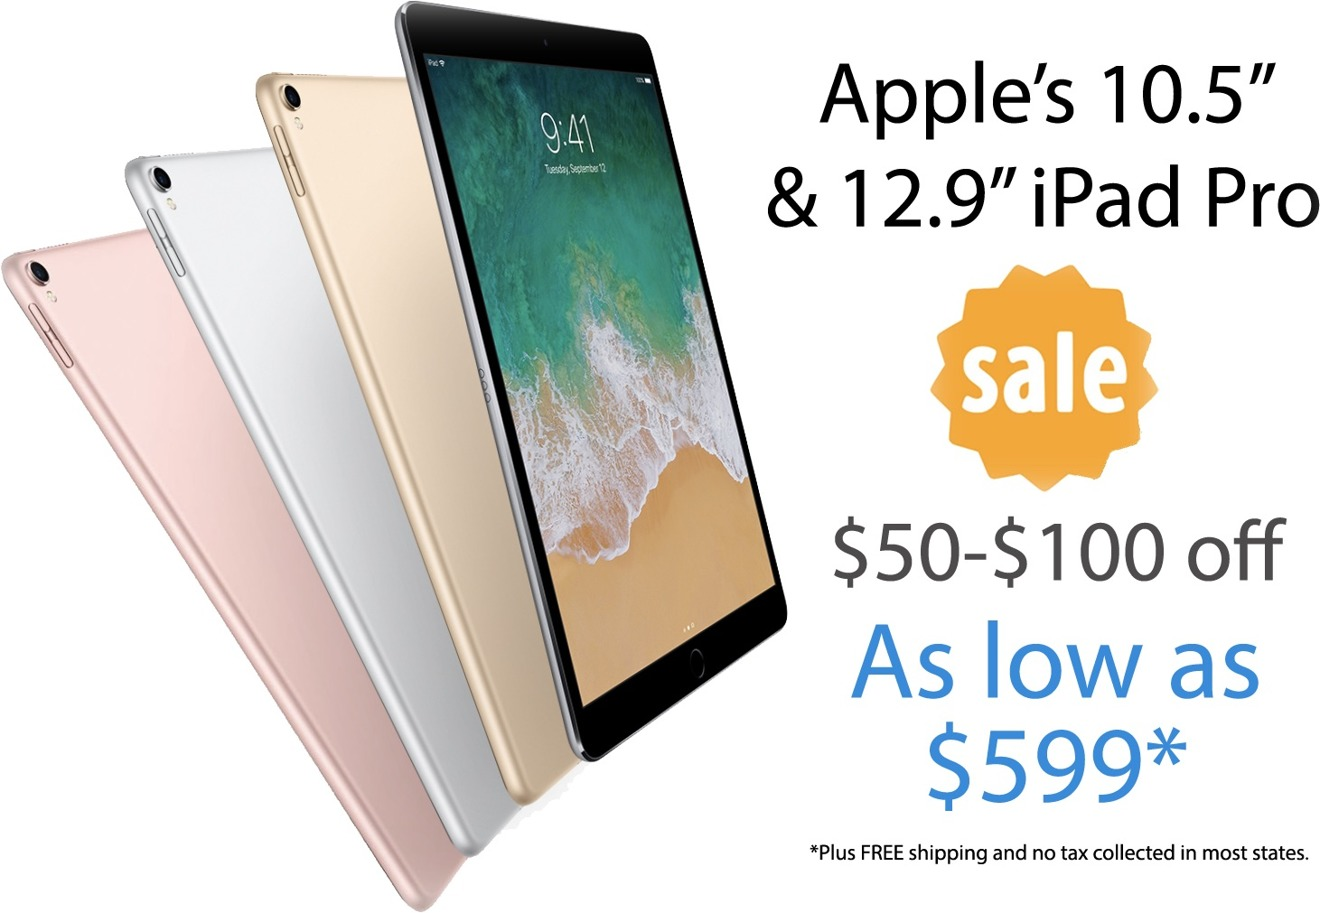 cd92b609945 Apple iPad Pro deals  Save  50 to  100 instantly